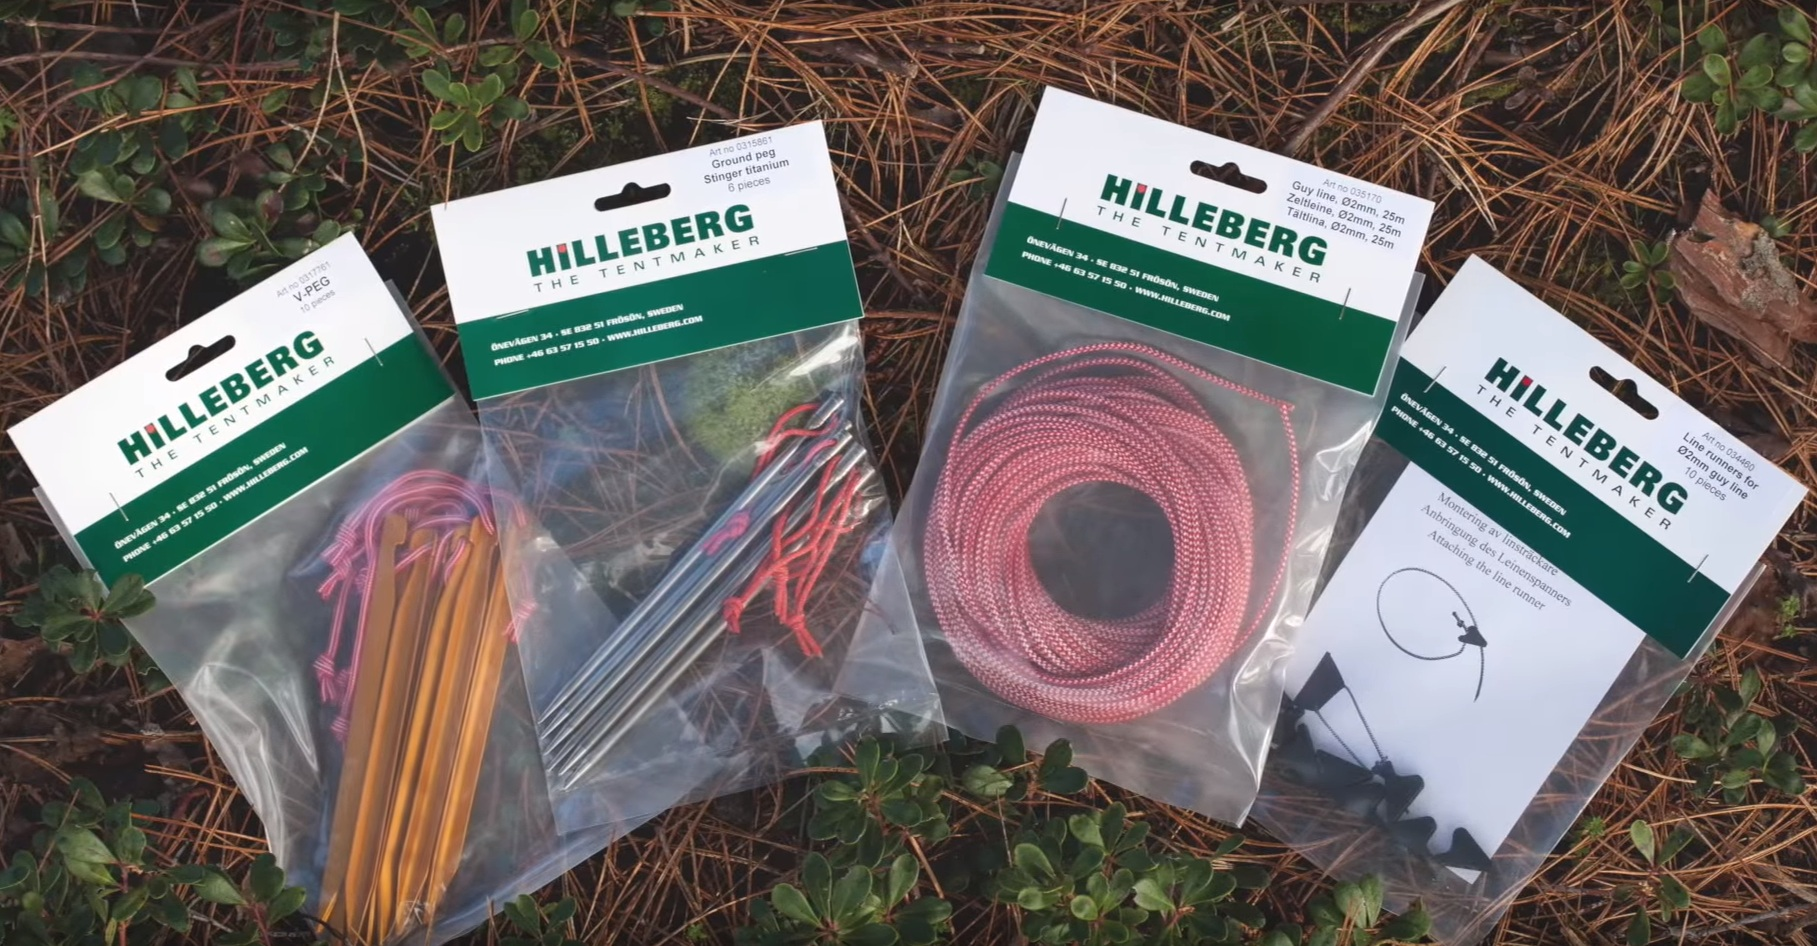 Hilleberg Niak backpacking tents parts